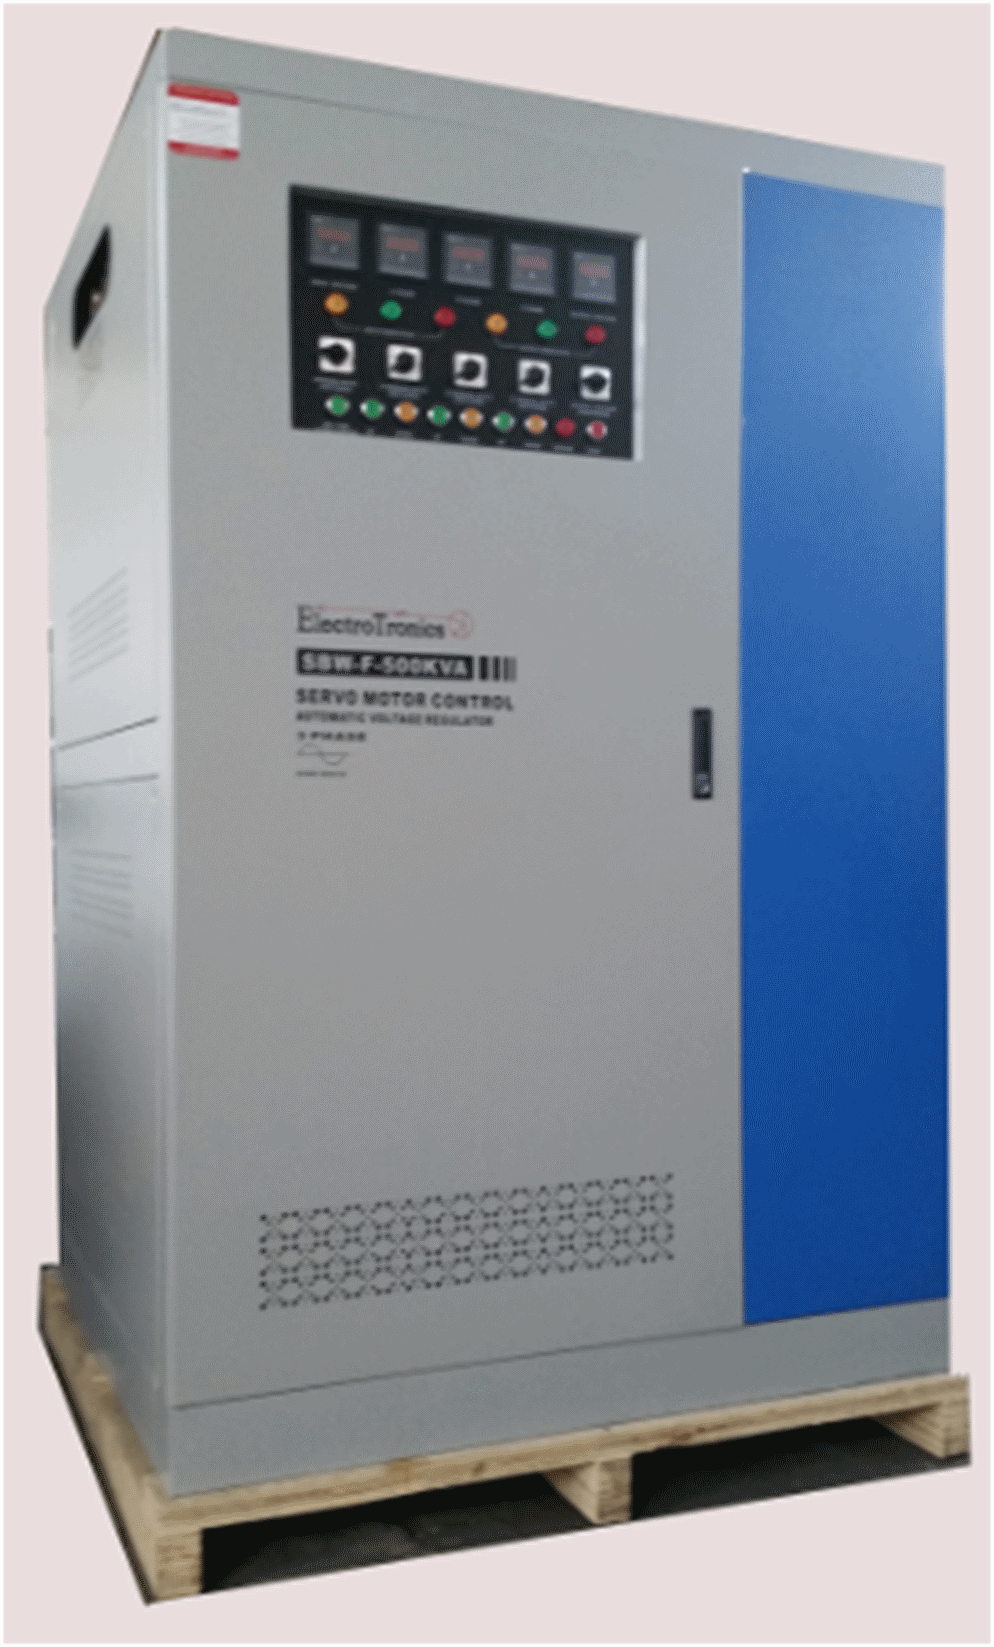 Automatic Voltage Regulator Avr Products Zimbabwe Of Control And Regulation Its Input Stabilizer Heavy Duty Industrial Type Bw F